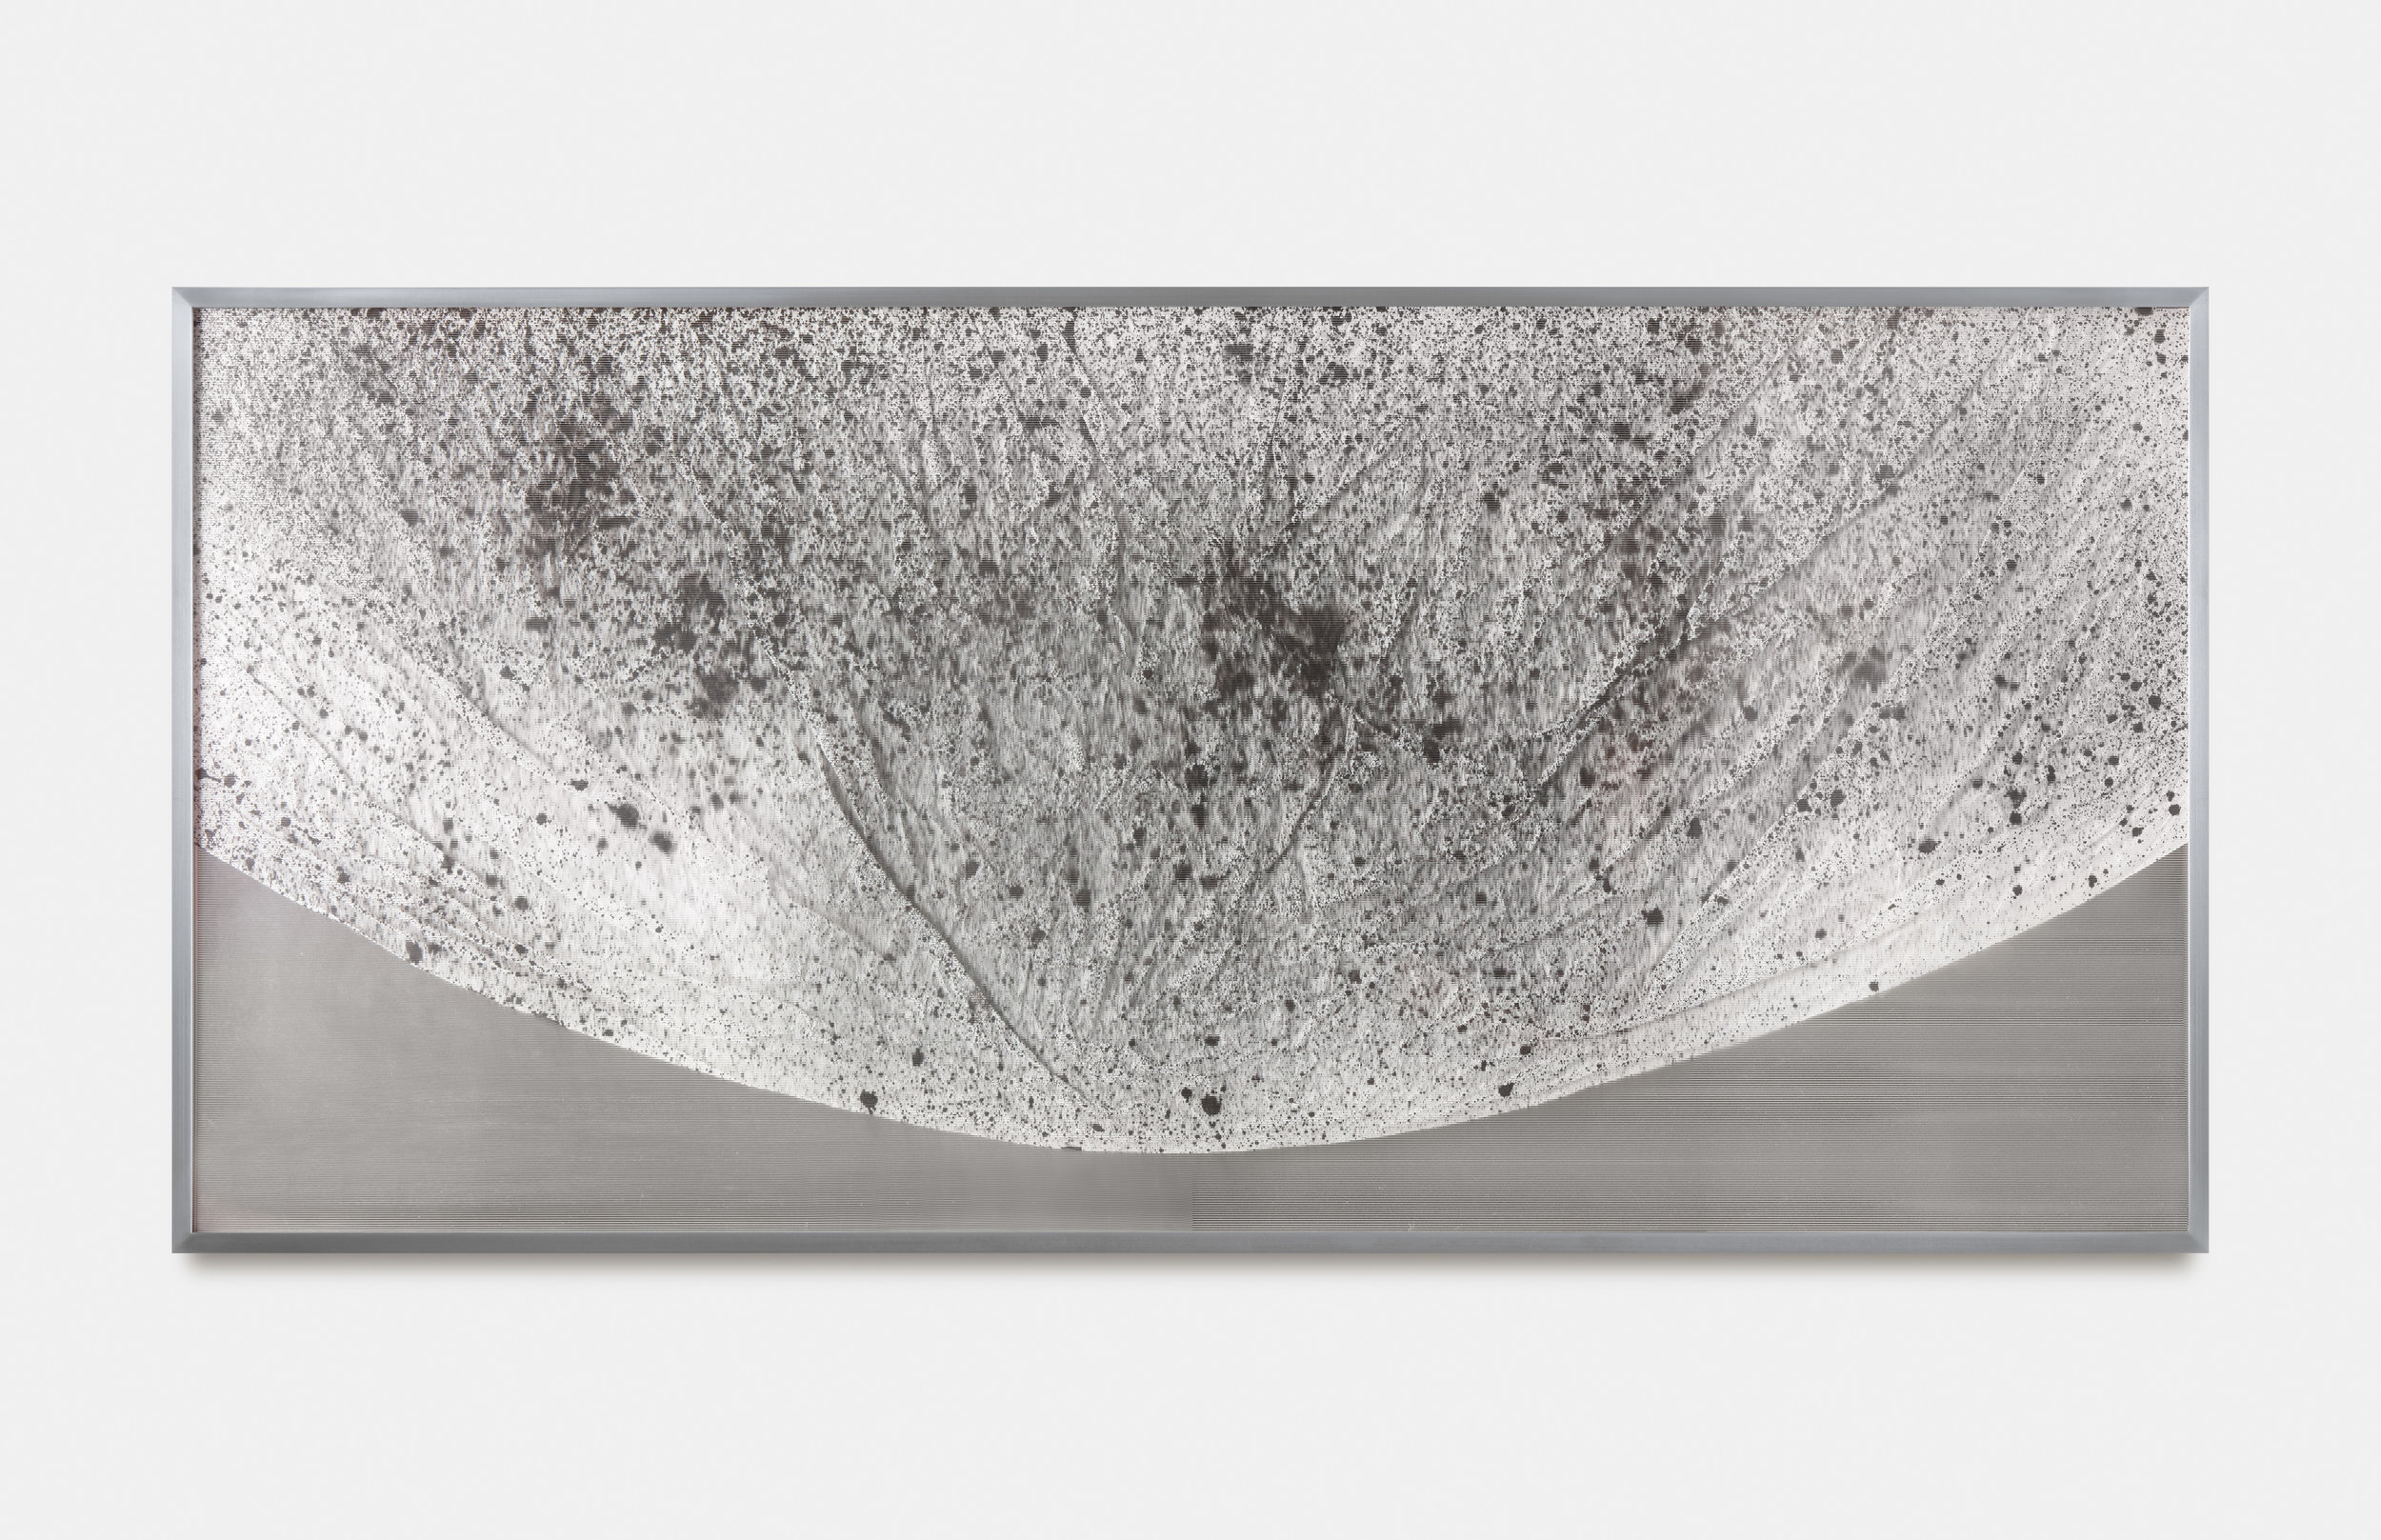 Verklärte Nacht (Transfigured Night) / Part III,  2018 Ink on Xuan paper on mirror beneath linear Plexiglas, aluminium frame 150 x 70 cm (59 x 28 in)